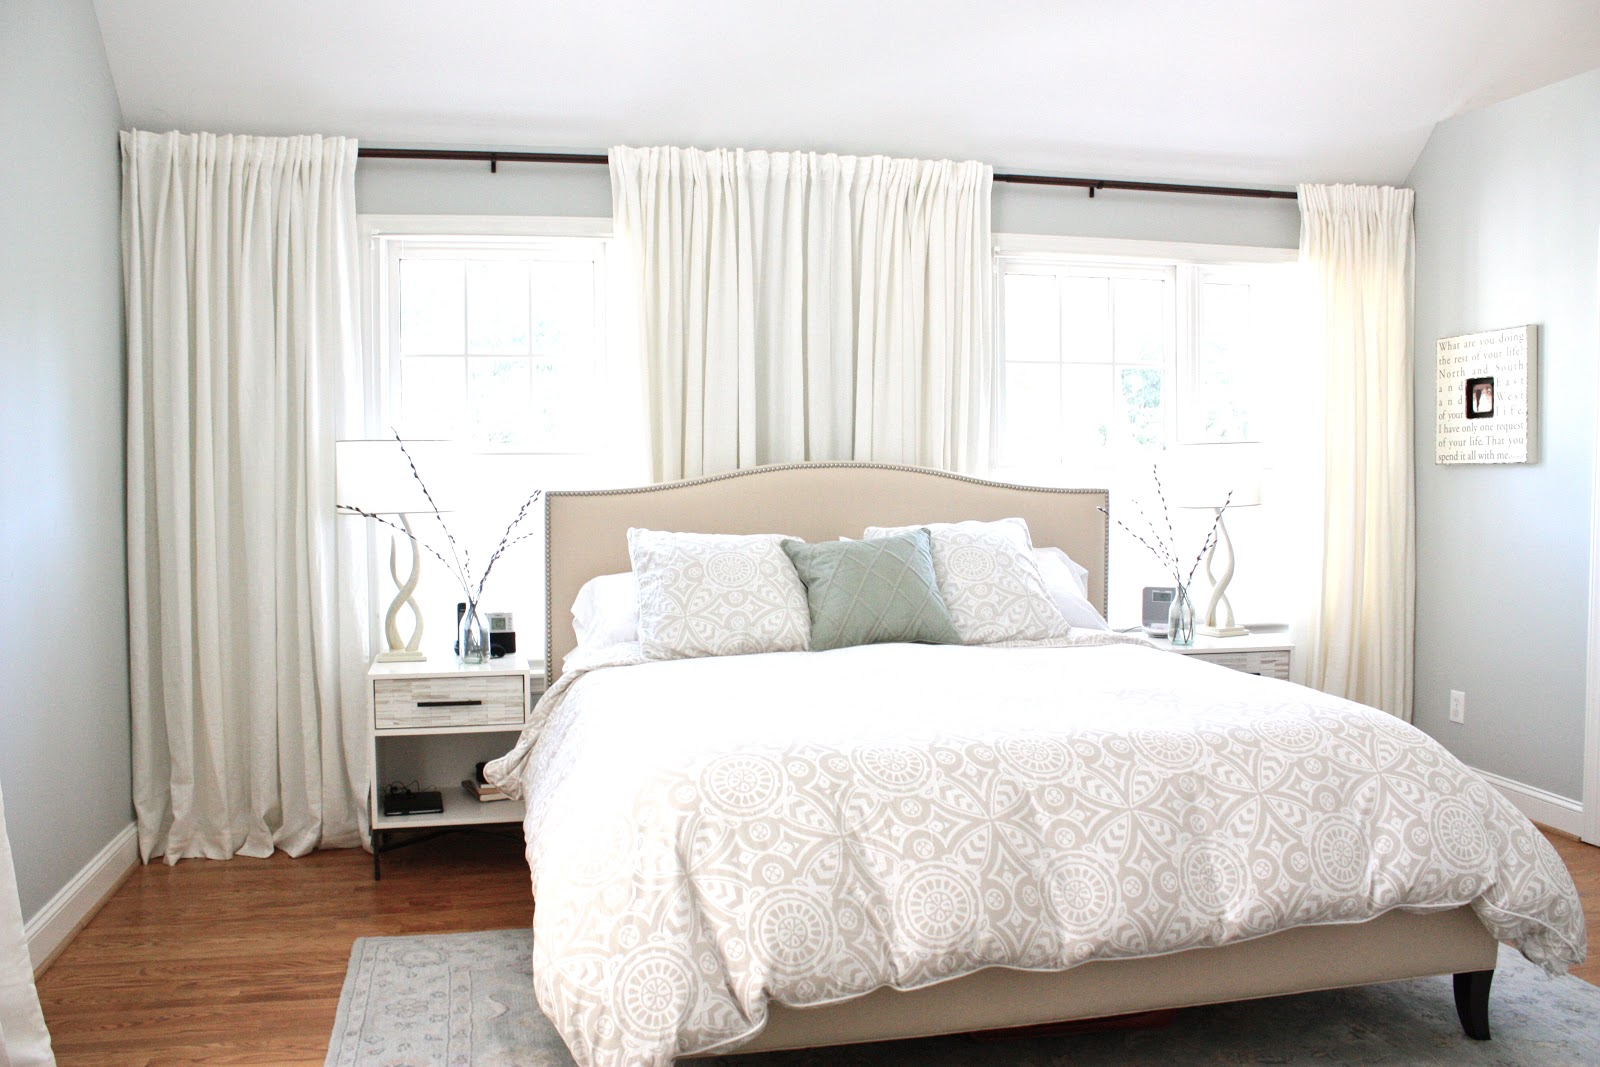 moss eclectic a before after peaceful bedroom makeover